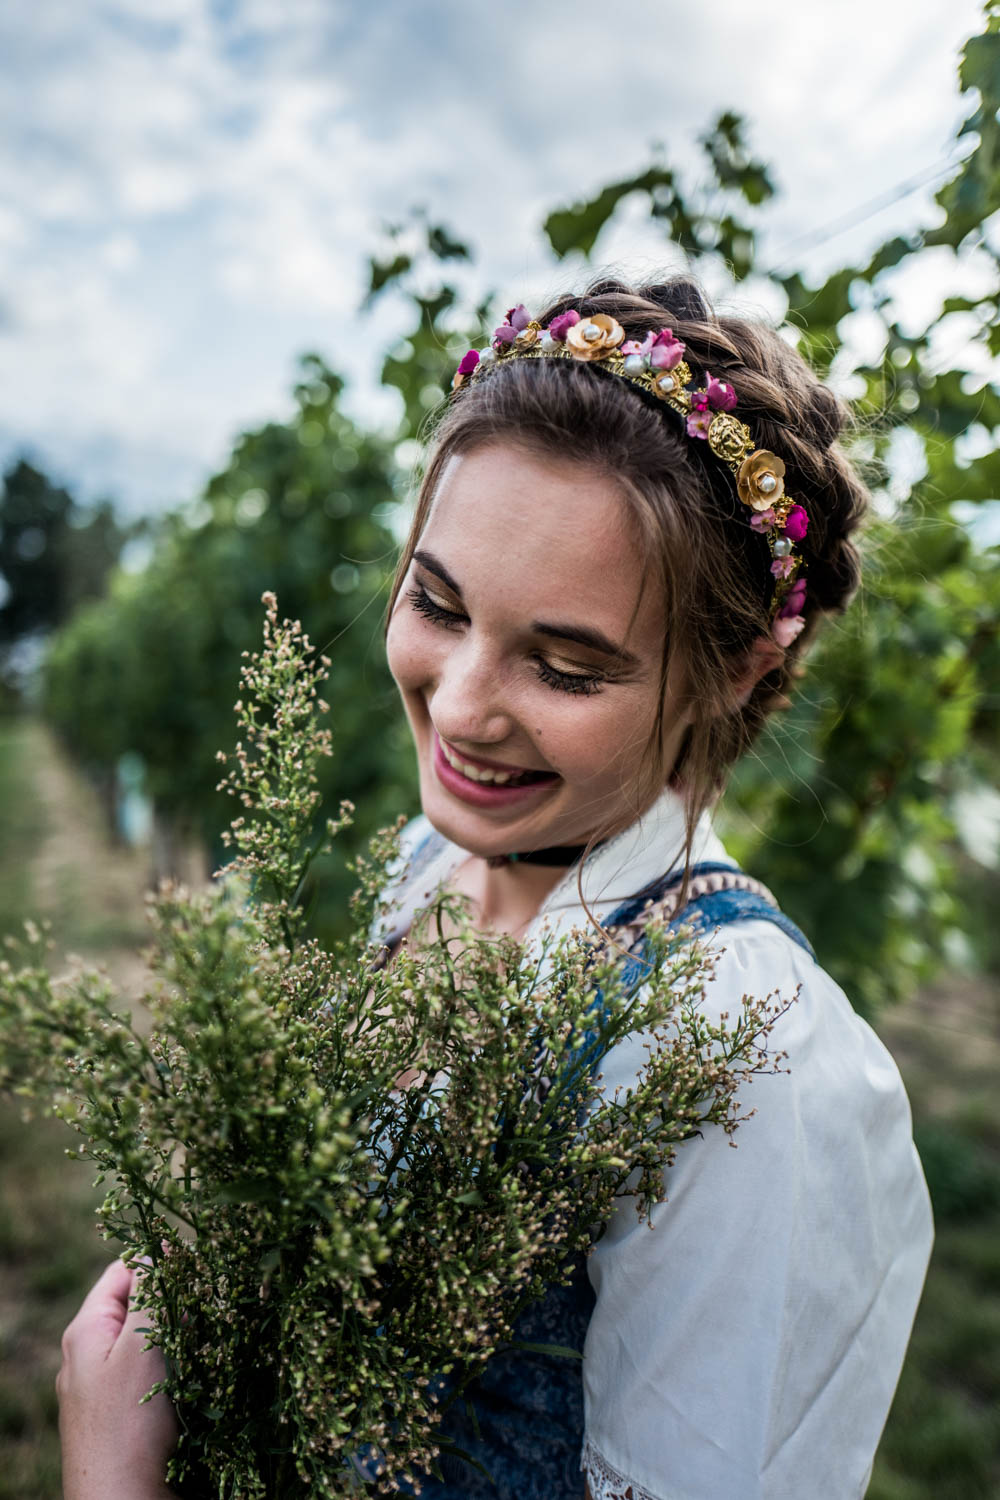 Trachtenkollektion_WeAreFlowergirls_Flowercrown_web-1020157.jpg